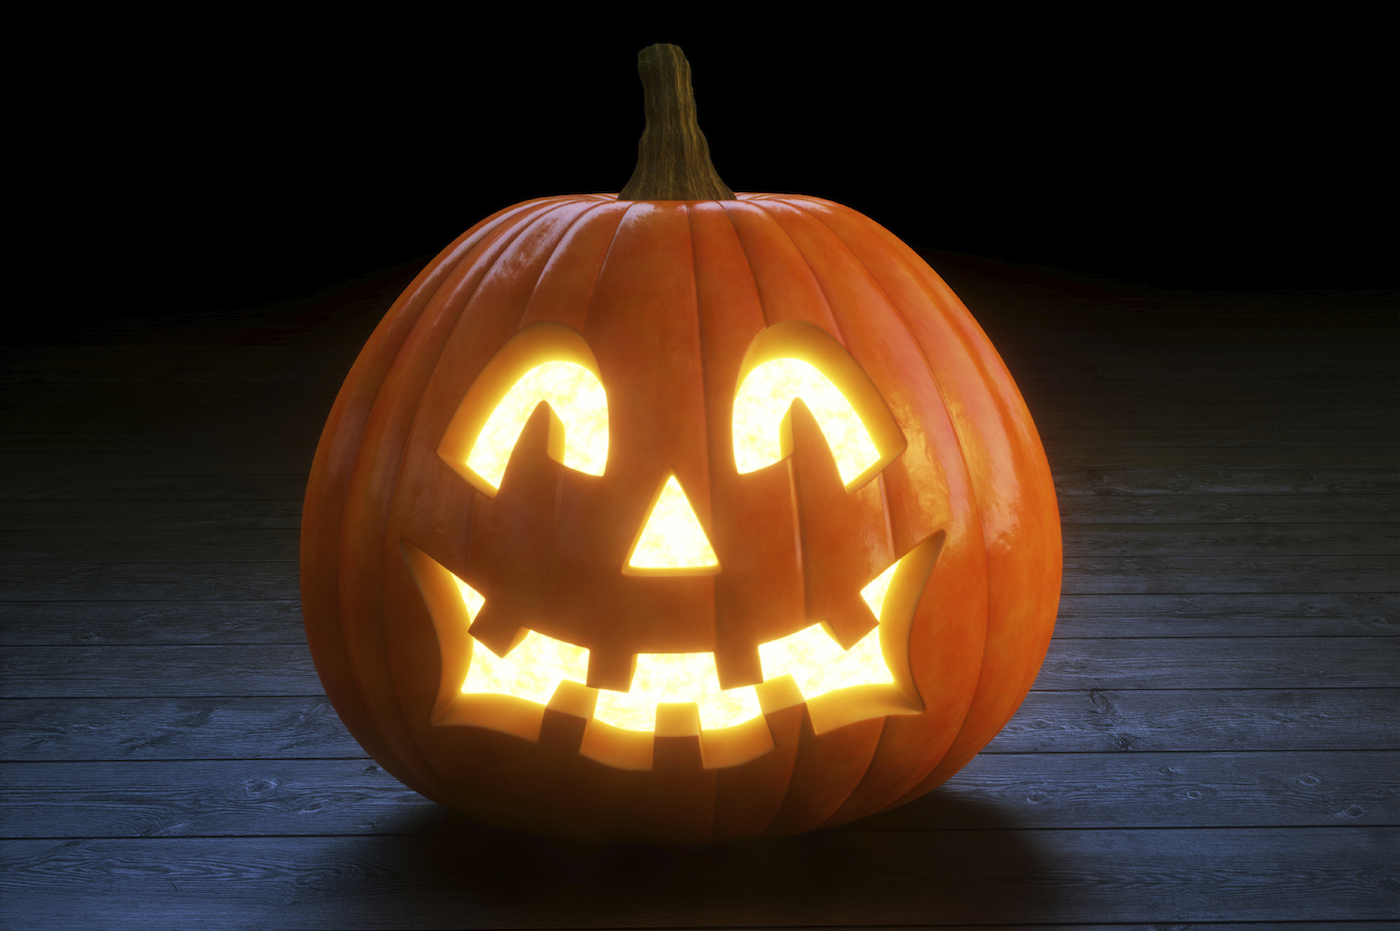 should christians take part in halloween celebrations? | the good